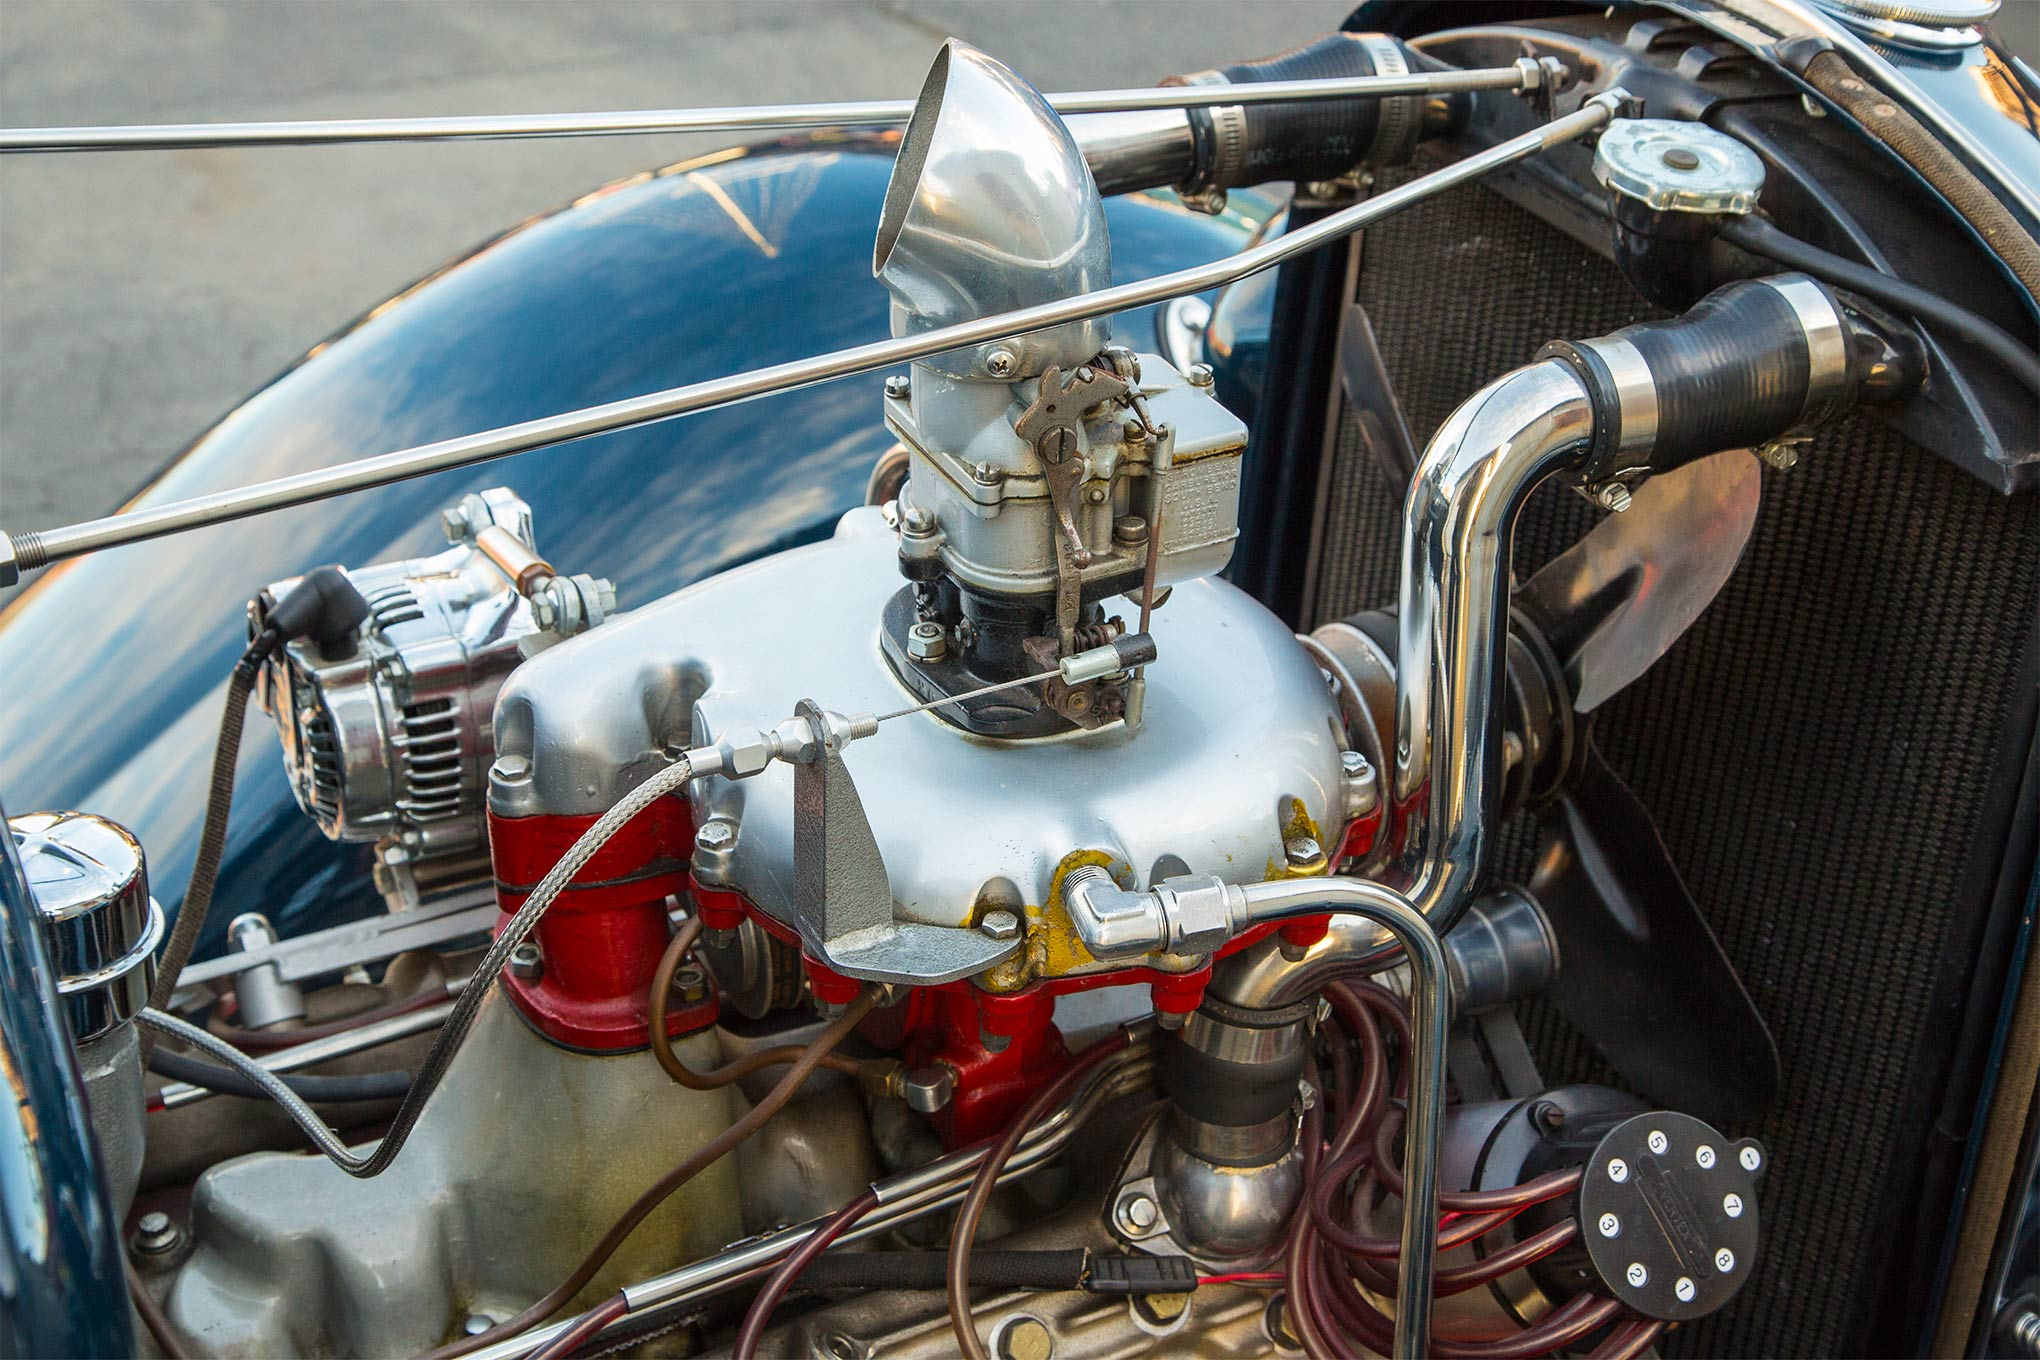 """Here's the part that spawned this entire car: a rare late-'30s McCulloch supercharger. Period magazine ads for the """"Mighty McCulloch Supercharger"""" touted """"power that defies the steepest hill…plows through stubborn desert sands…makes you master of all traffic."""" All that and 124 hp could be yours for just $84.50."""